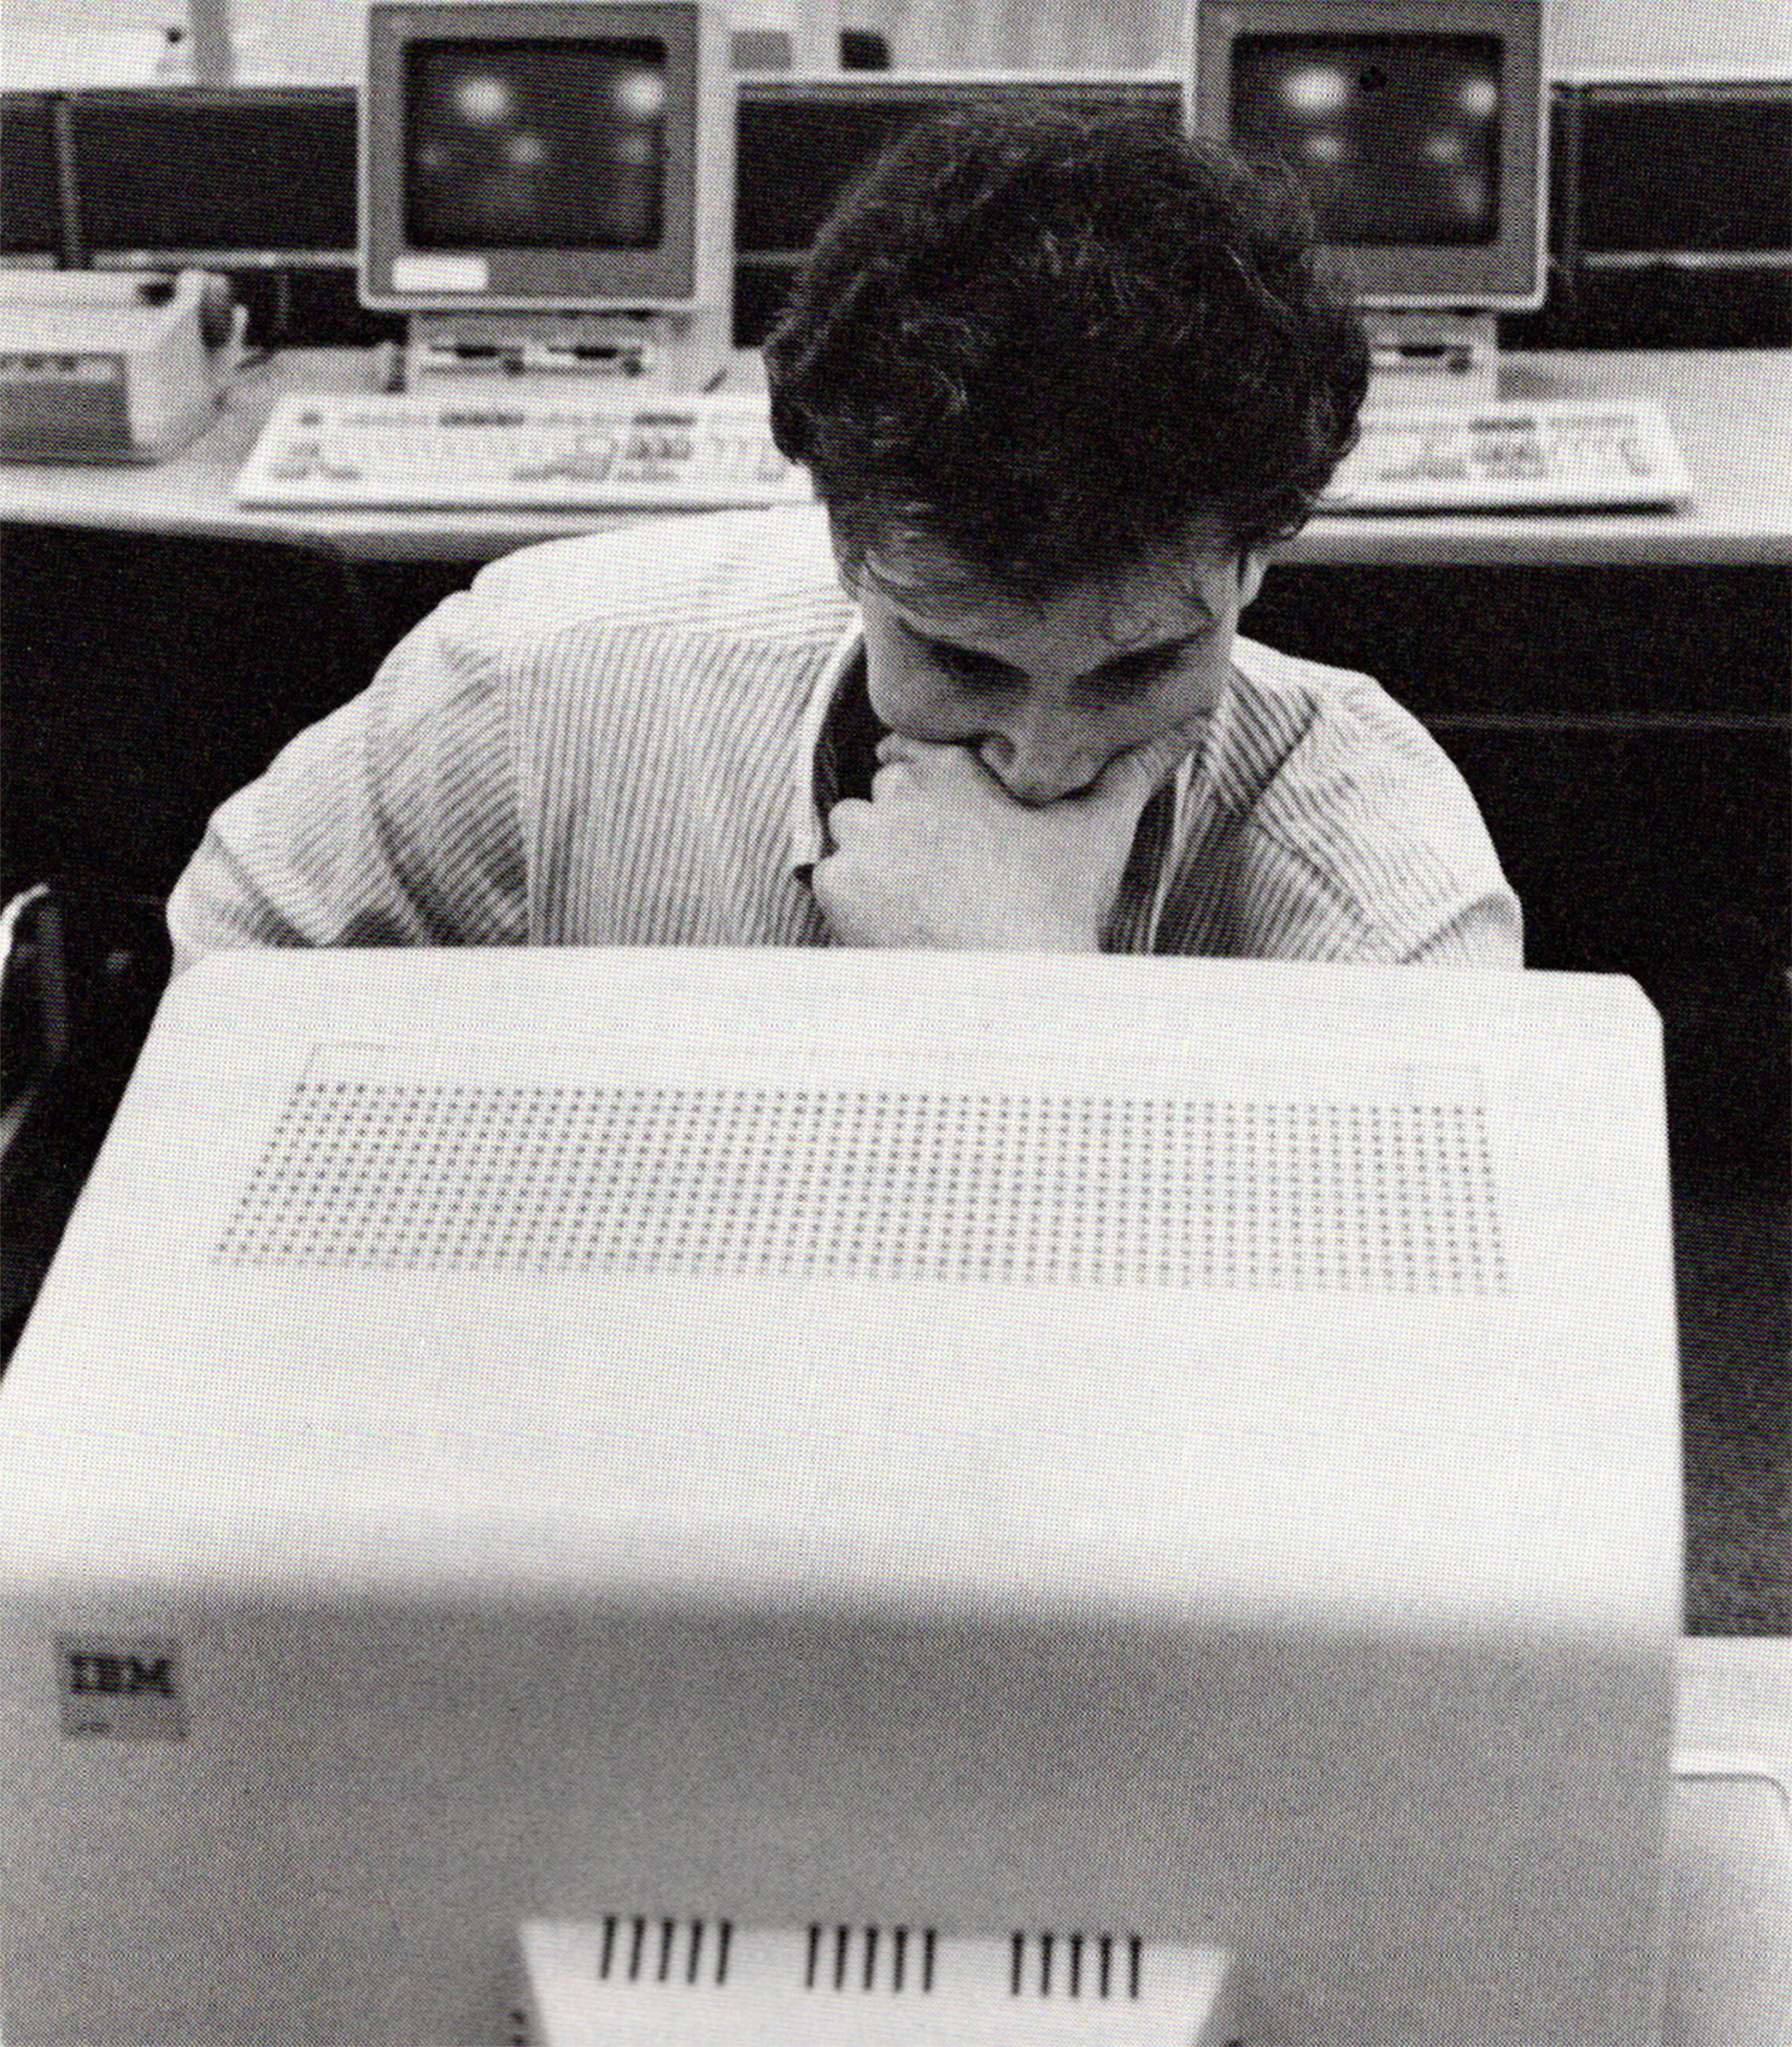 Black and white photo of a male college student with his hand against his mouth and chin, looking pensively at a computer screen